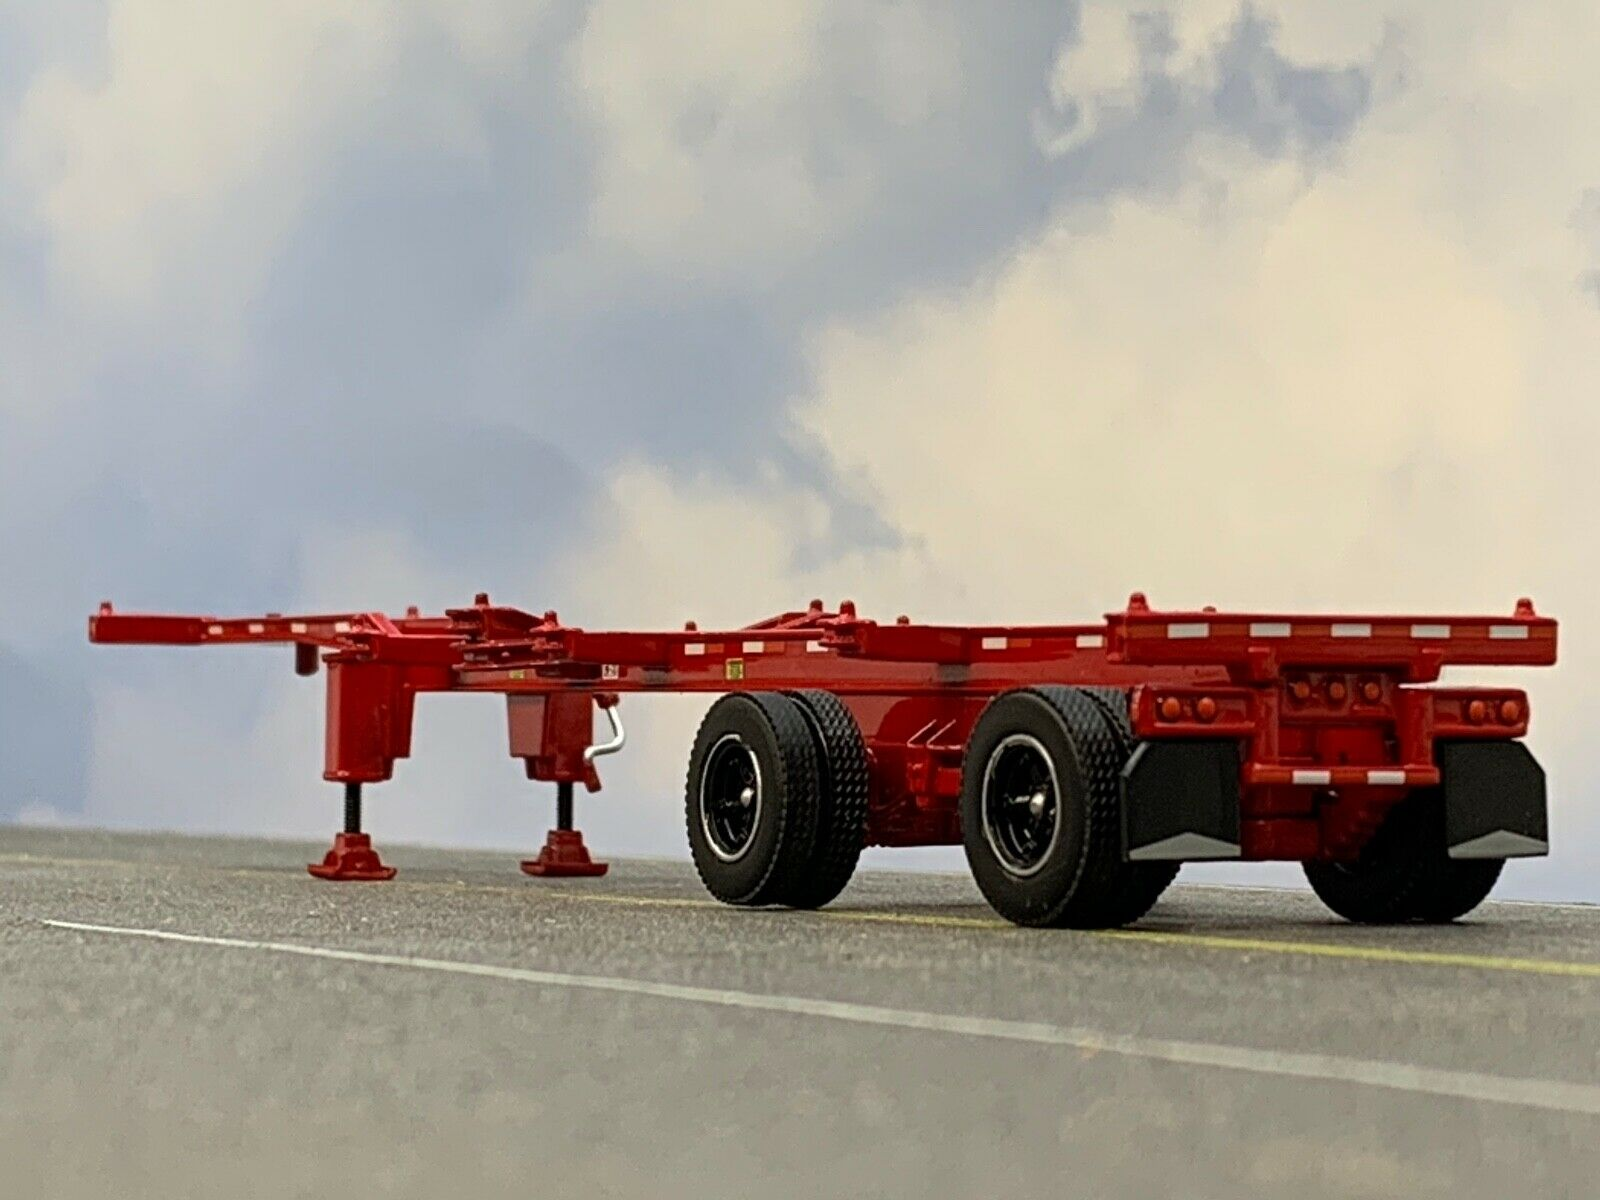 1/64 DCP RED 40' SPREAD AXLE CONTAINER TRAILER